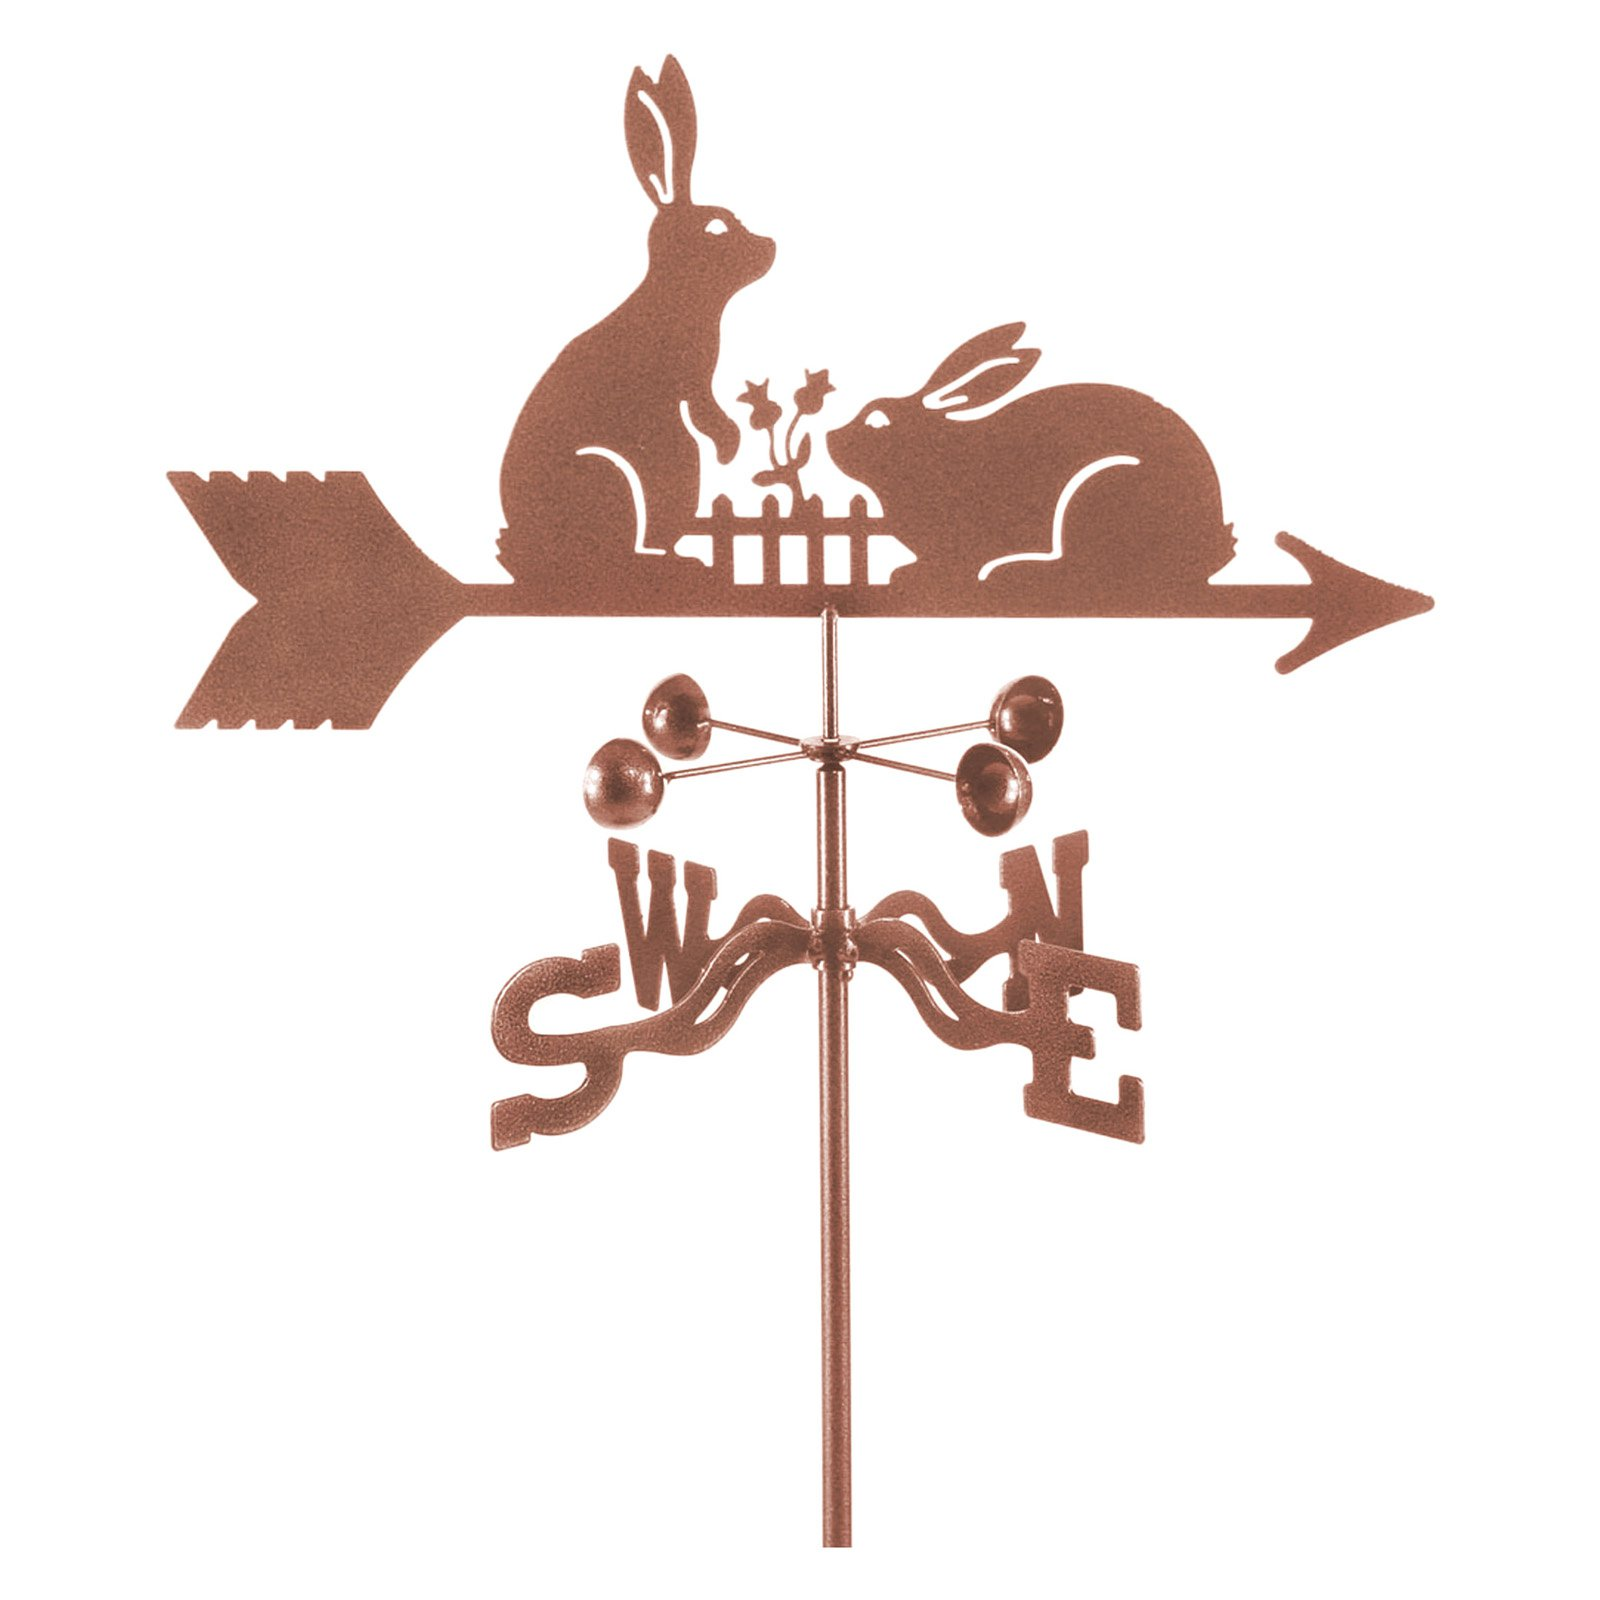 EZ Vane Rabbits with Fence Weathervane by EZ Vane